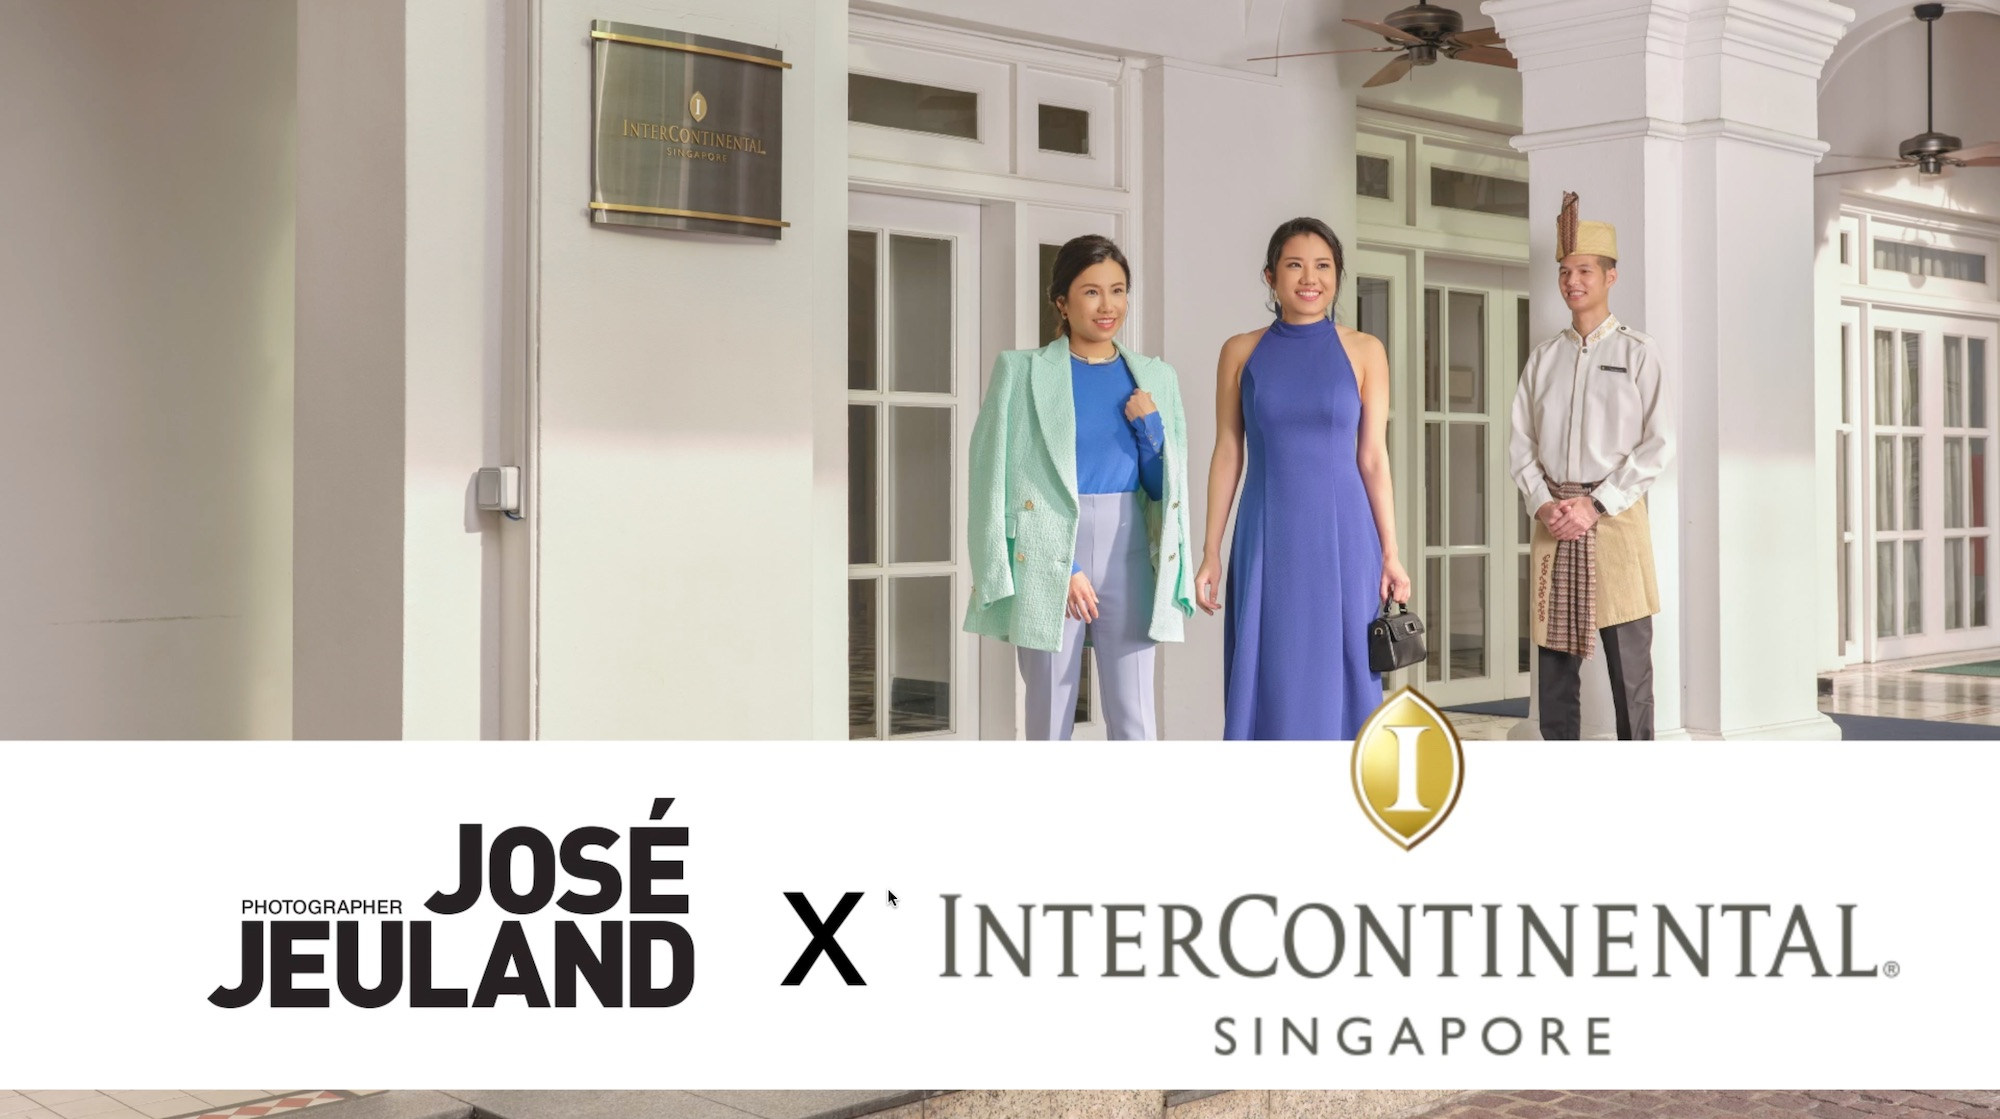 Intercontinental Hotel Singapore BTS Jose Jeuland Commercial photographer COCO Creative Studio copy